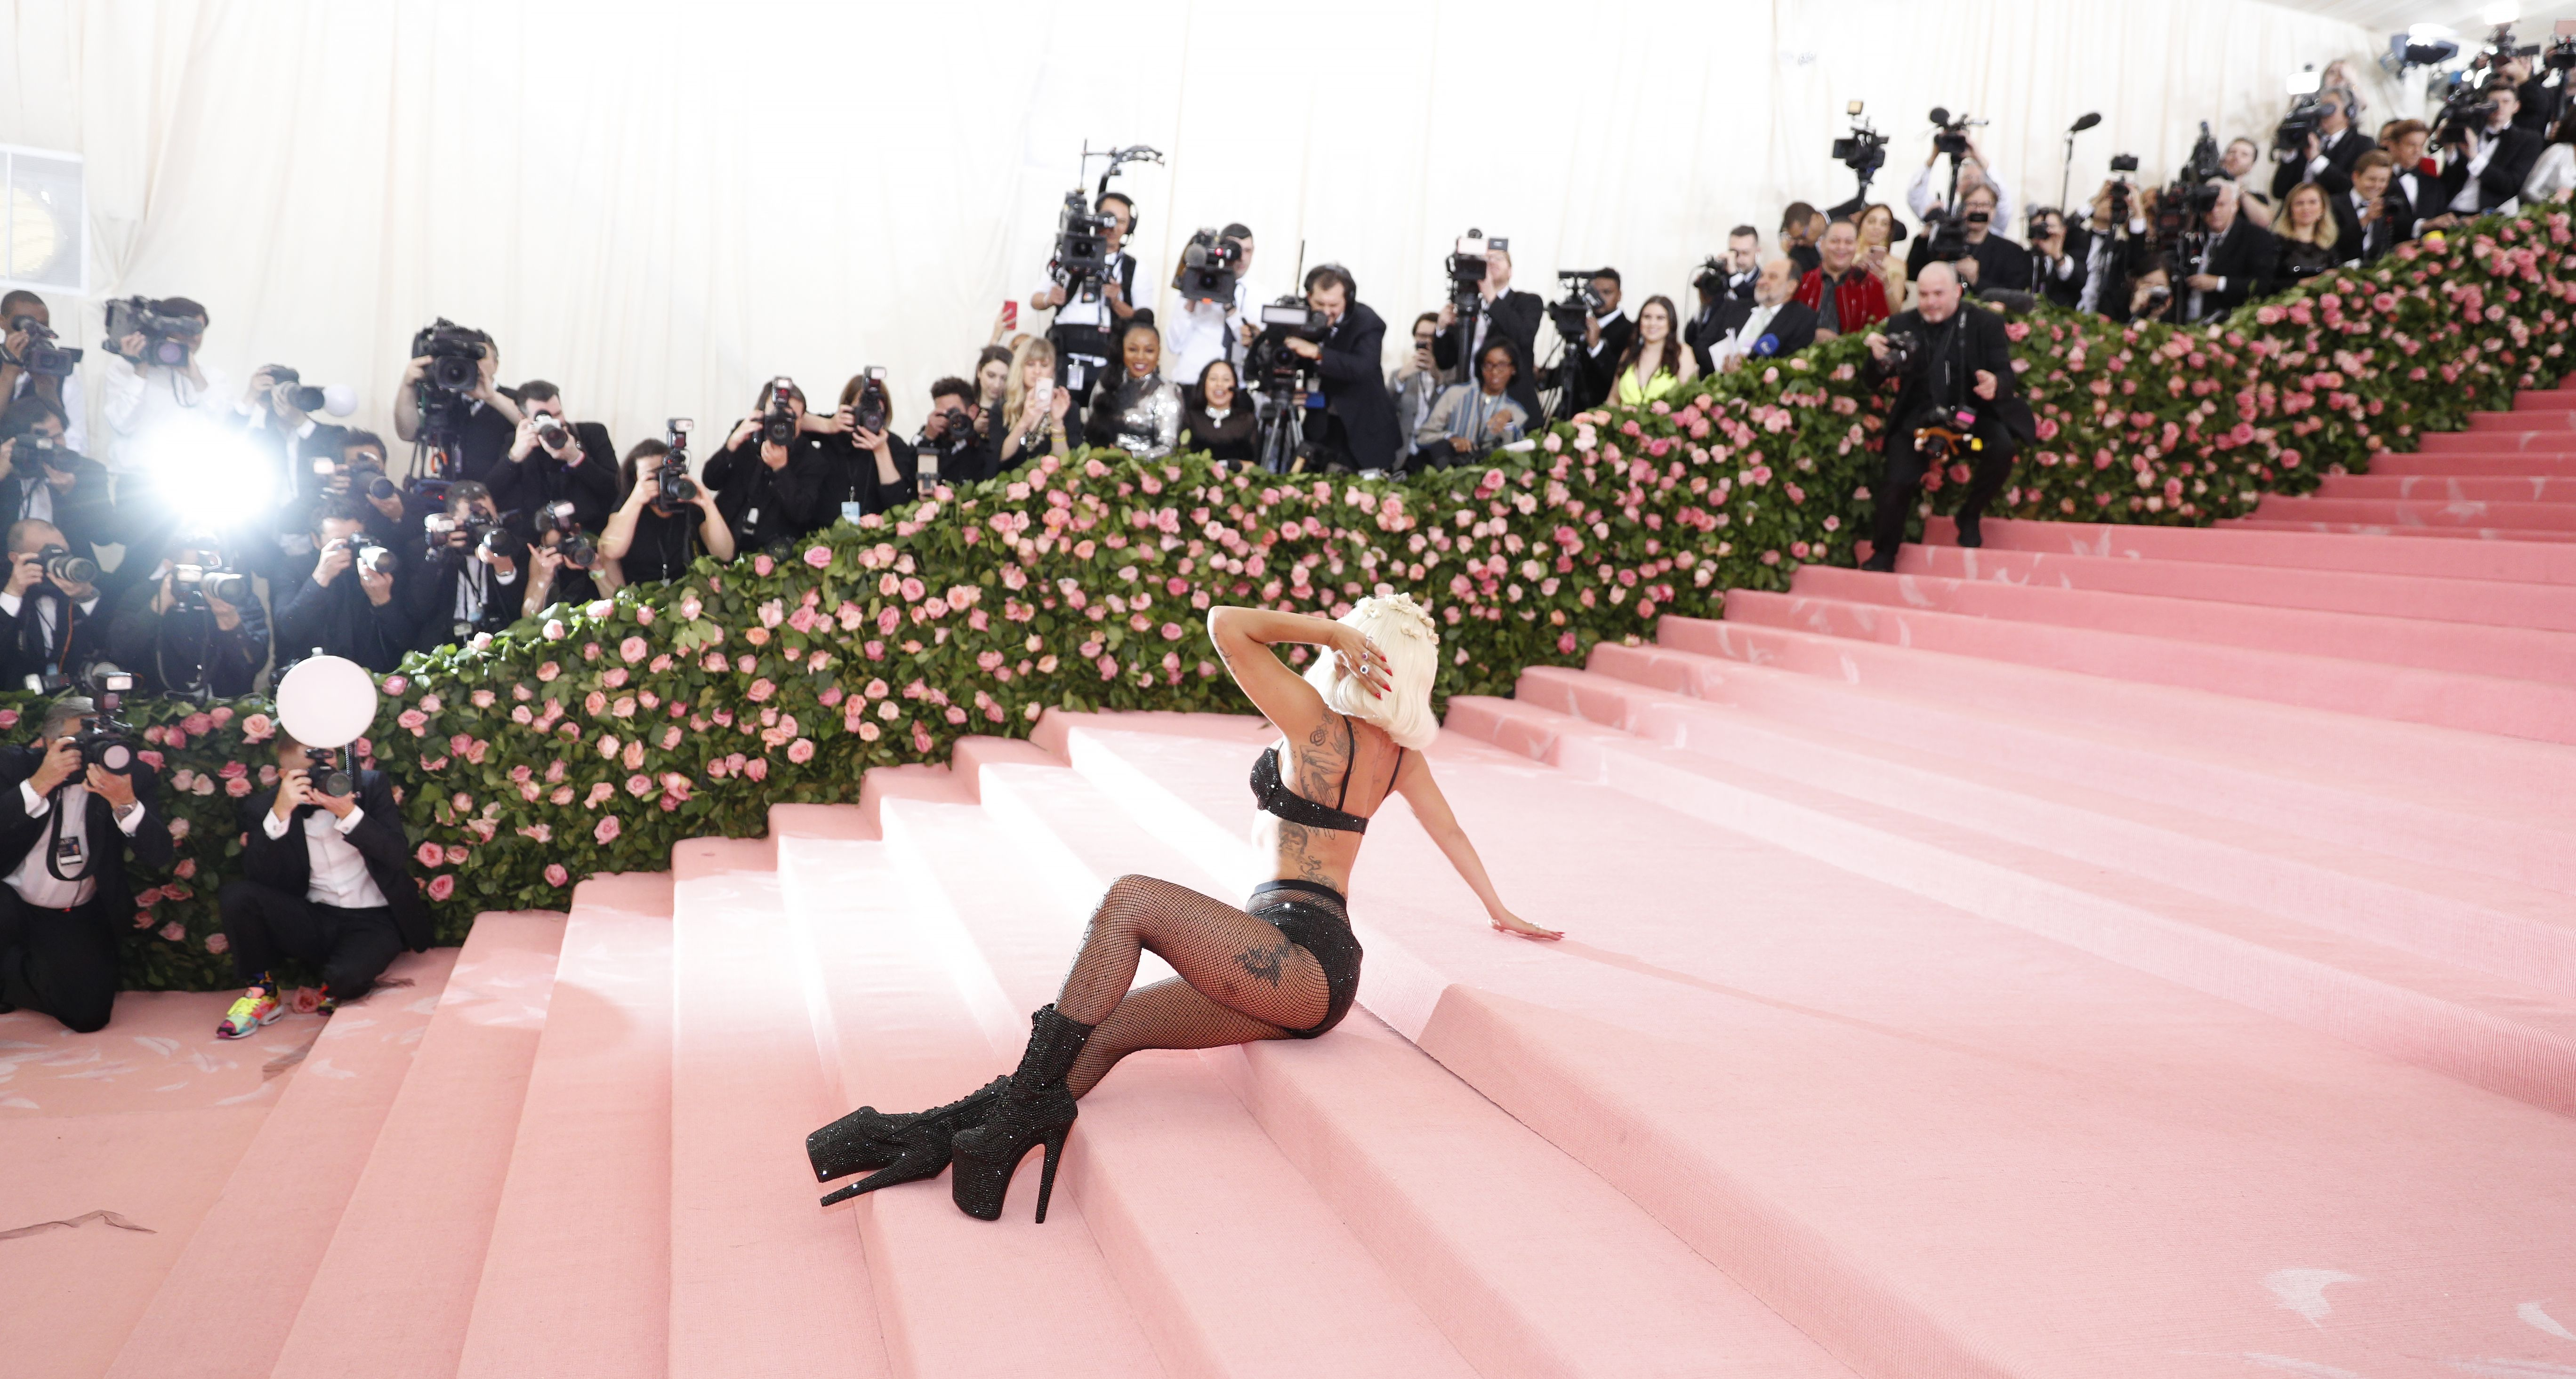 Lady Gaga arrives on the red carpet for the 2019 Met Gala, the annual benefit for the Metropolitan Museum of Art's Costume Institute, in New York, New York, USA, 06 May 2019. The event coincides with the Met Costume Institute's new spring 2019 exhibition, 'Camp: Notes on Fashion', which runs from 09 May until 08 September 2019.Costume Institute Benefit celebrating the opening of Camp: Notes on Fashion, Arrivals, The Metropolitan Museum of Art, New York, USA - 06 May 2019